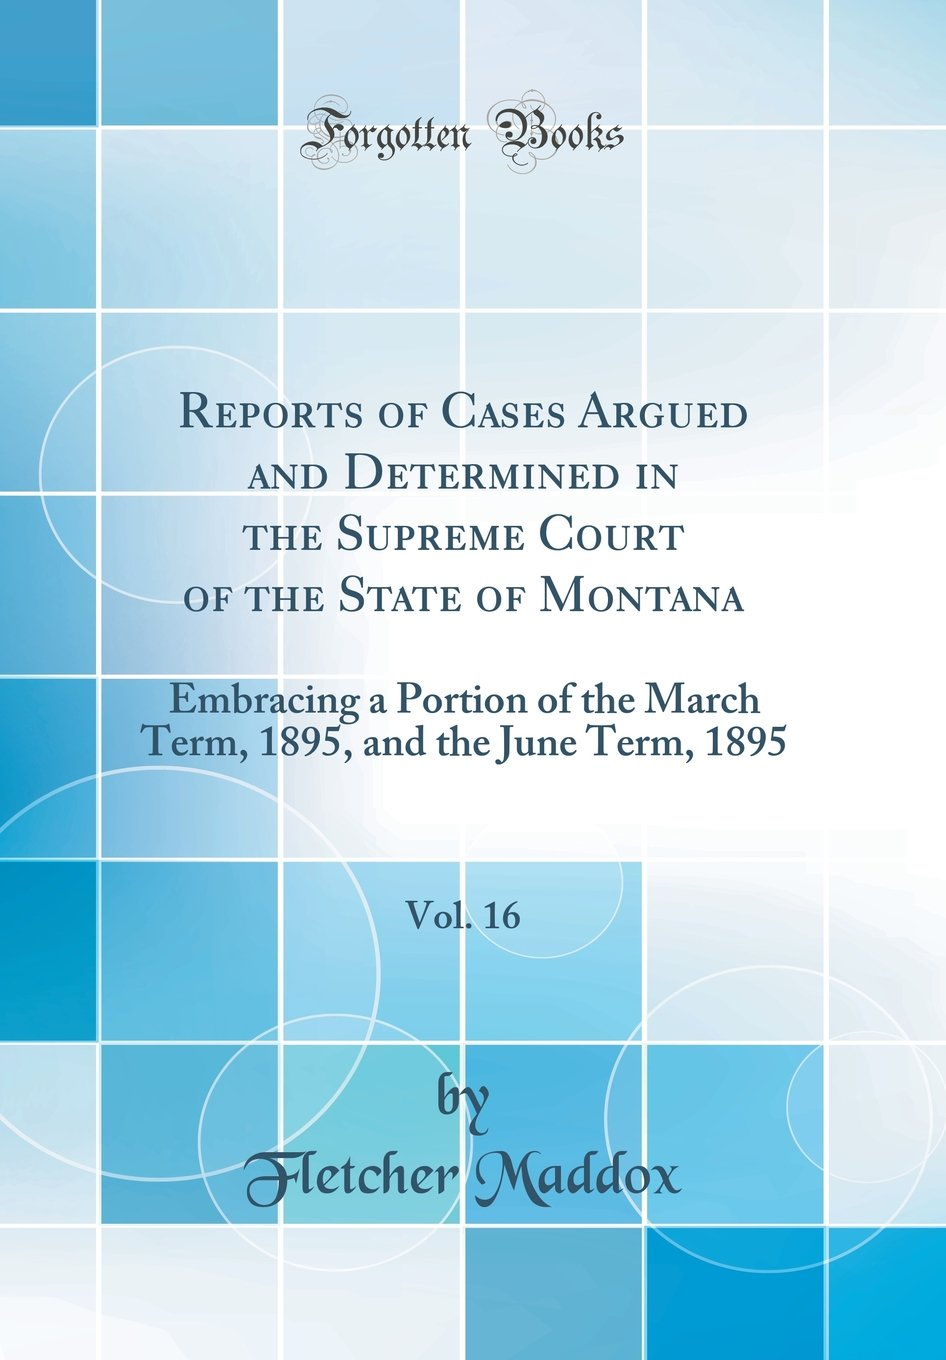 Reports of Cases Argued and Determined in the Supreme Court of the State of Montana, Vol. 16: Embracing a Portion of the March Term, 1895, and the June Term, 1895 (Classic Reprint) pdf epub